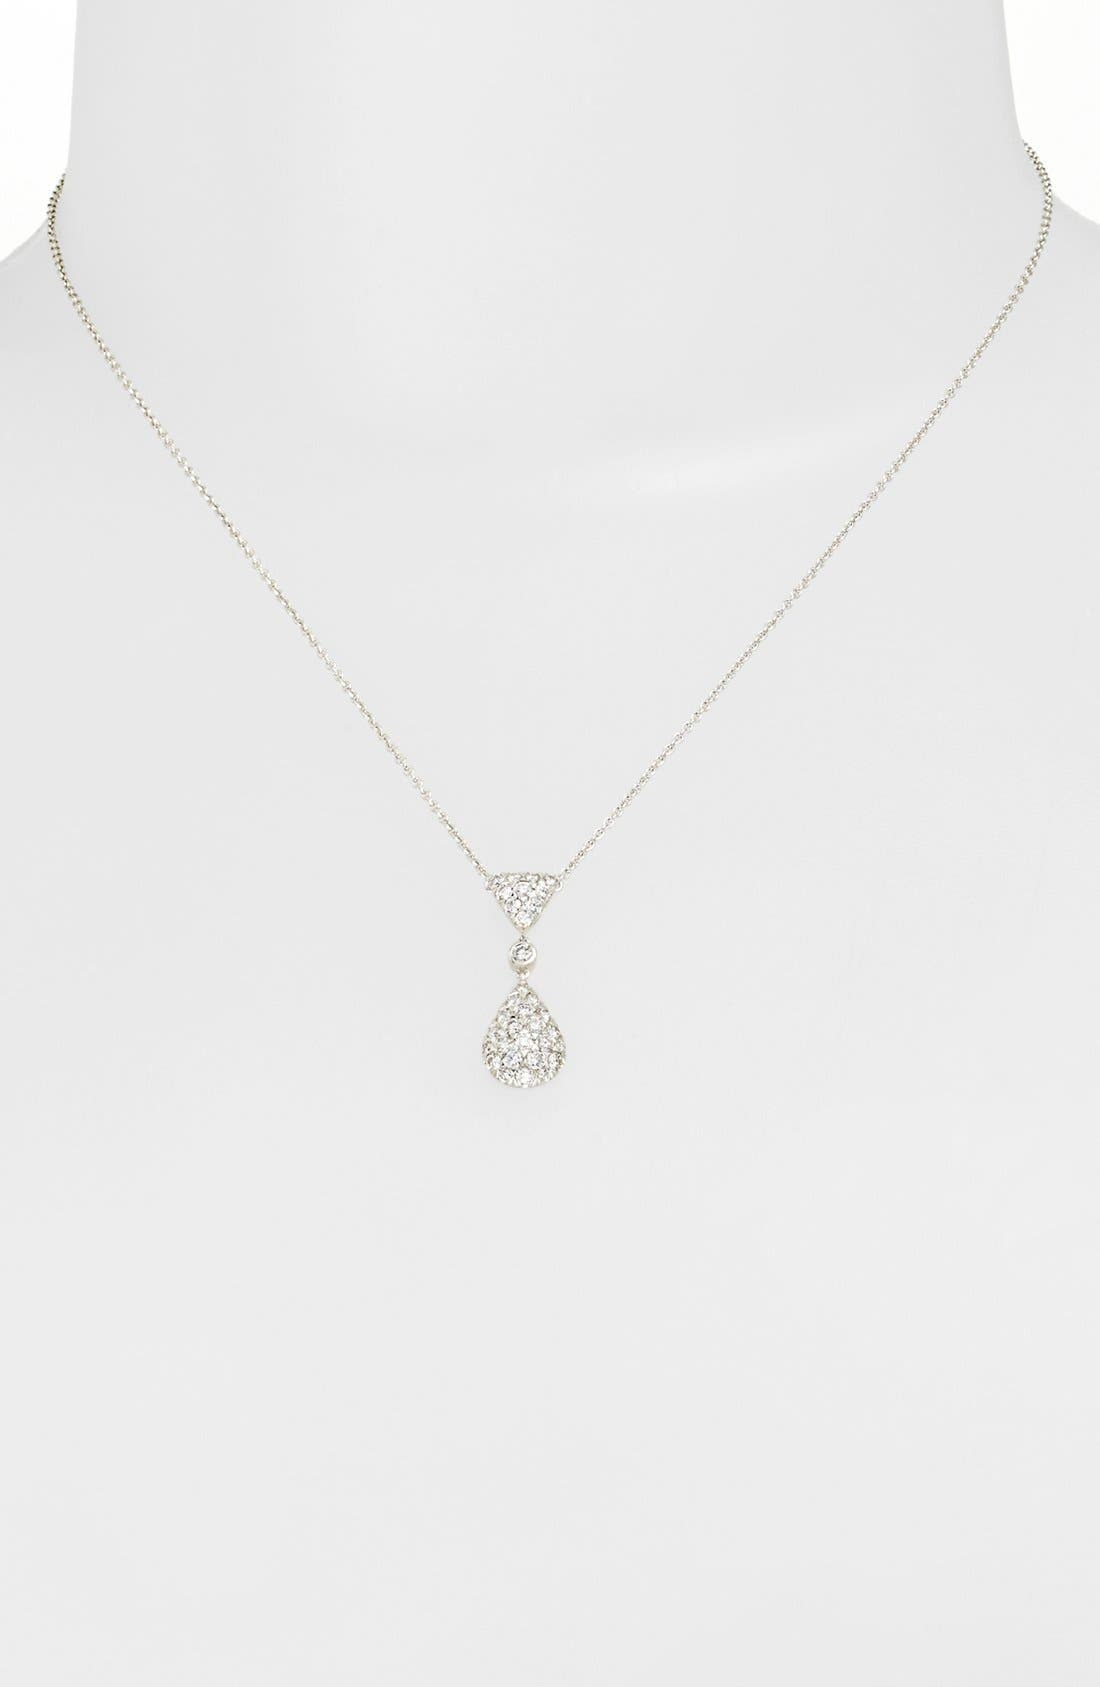 Main Image - Kwiat 'Moonrise' Diamond Pendant Necklace